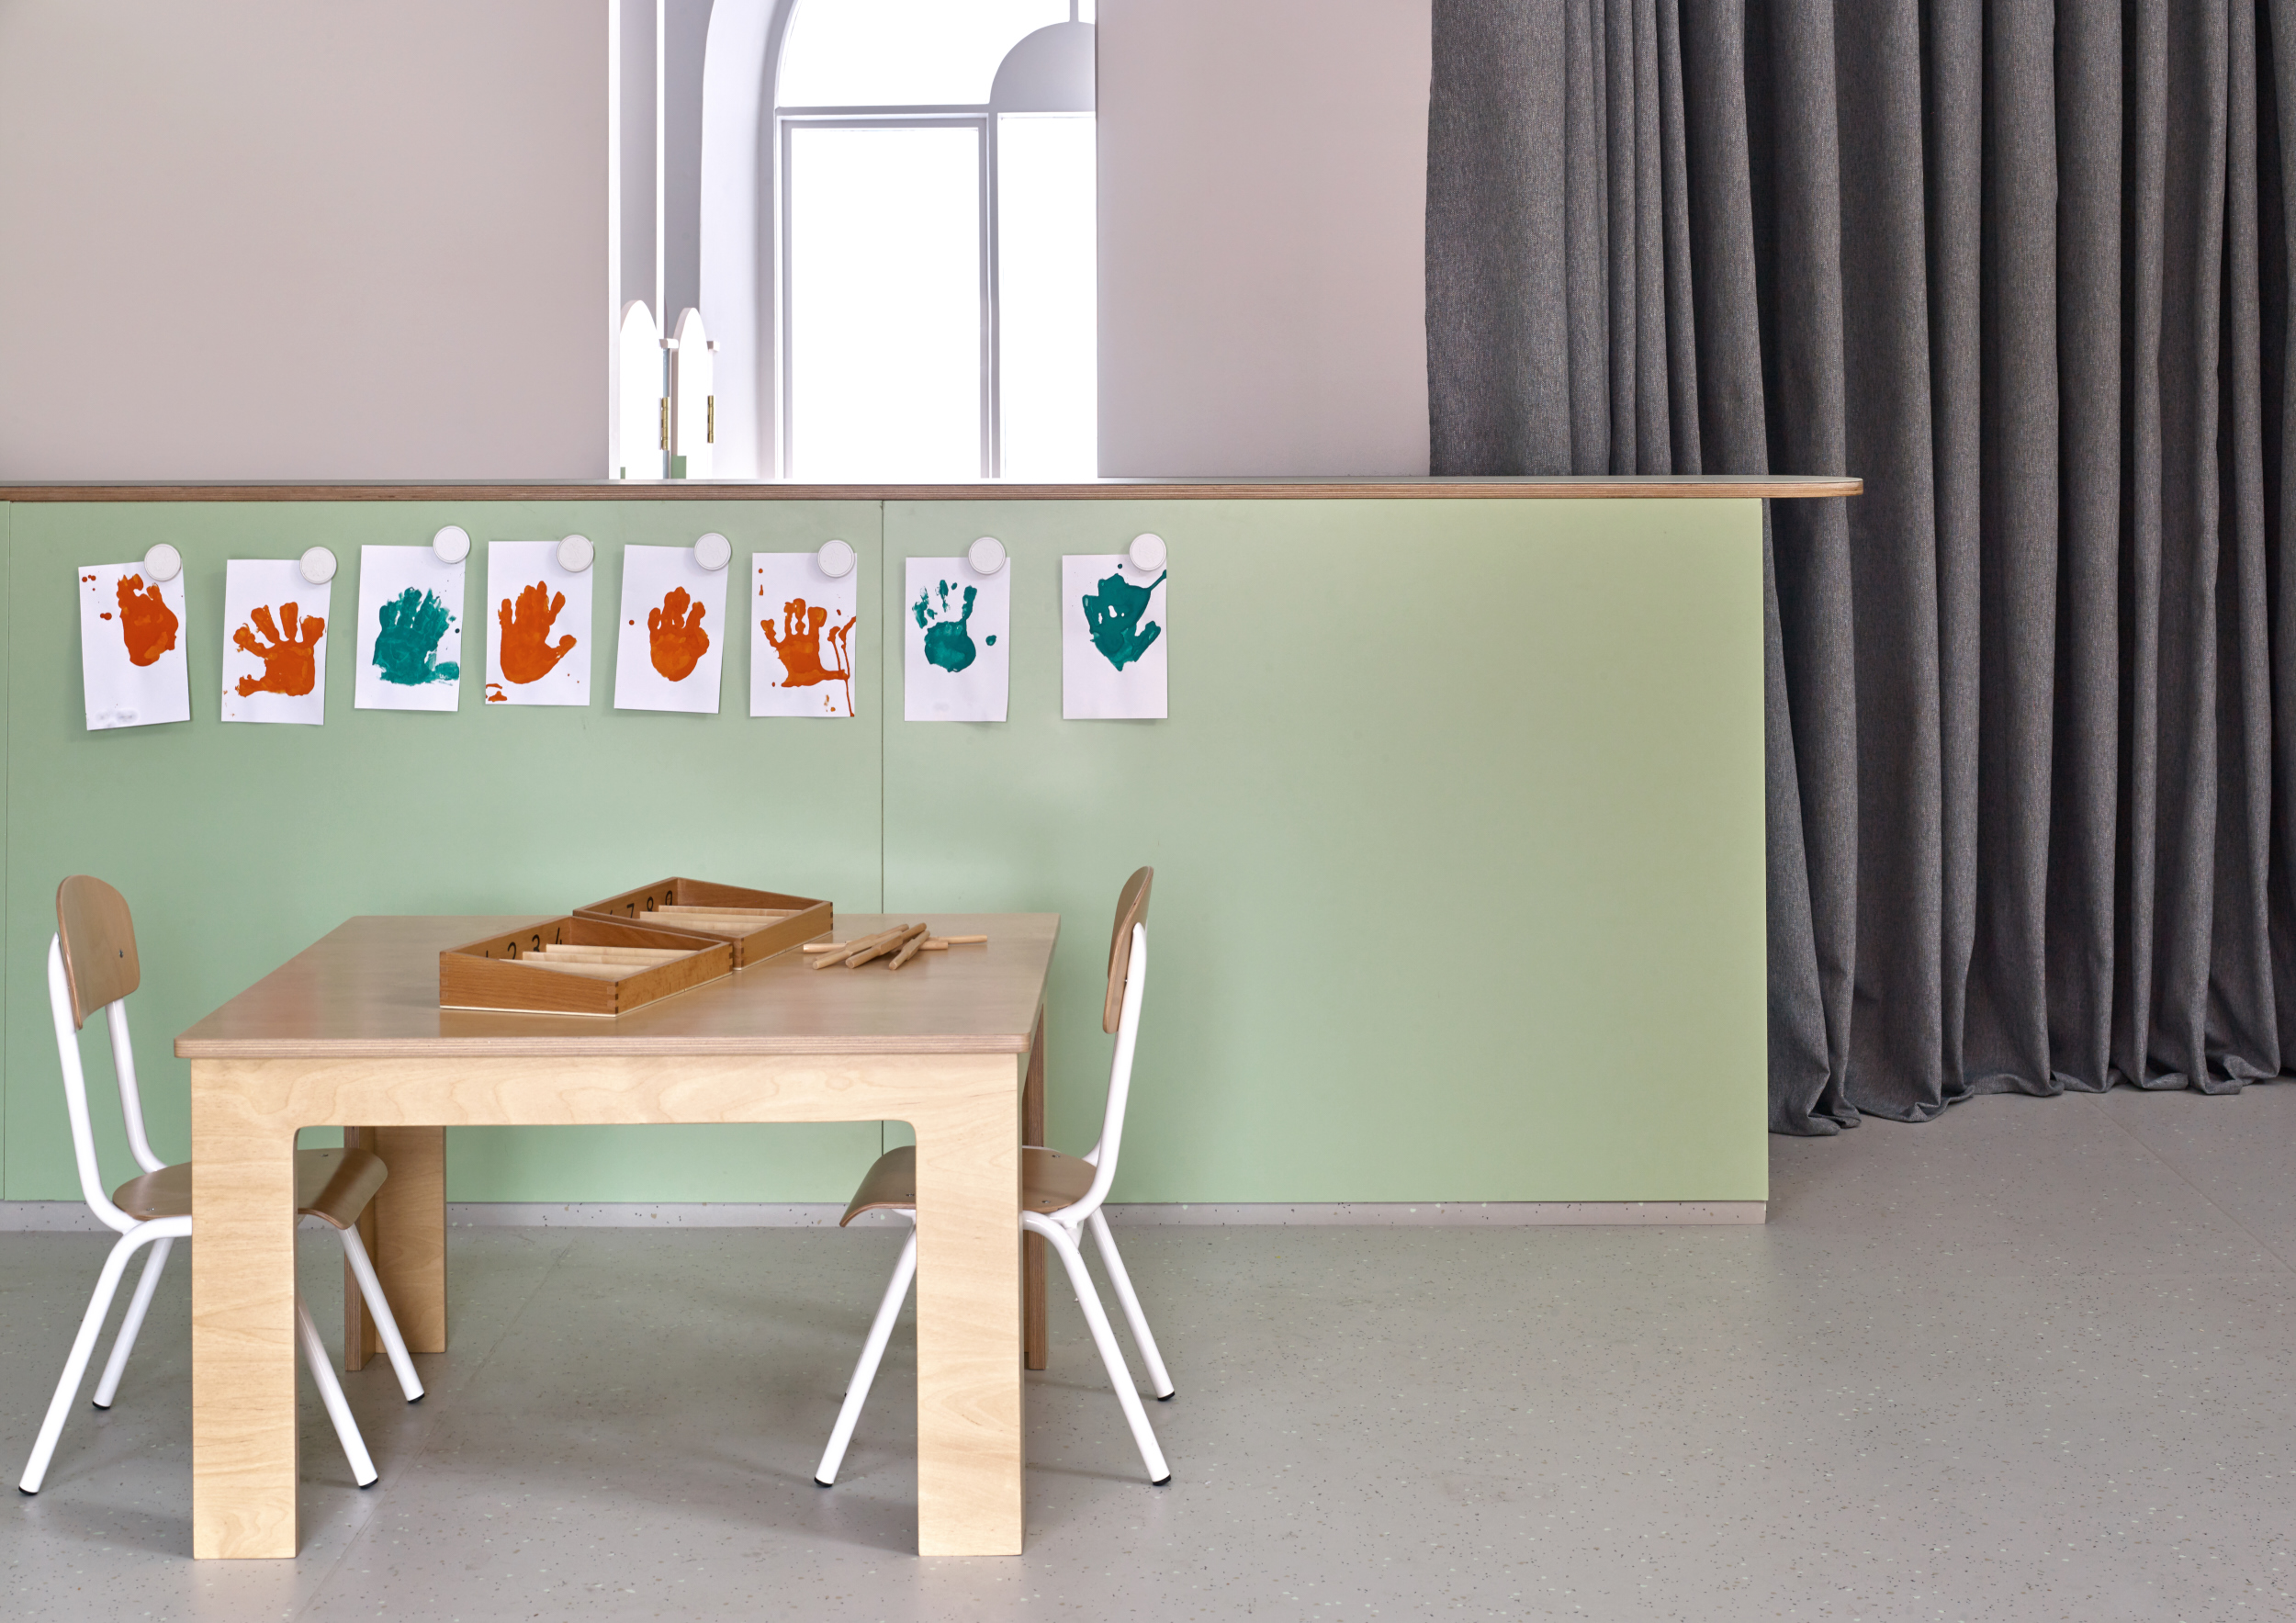 A new area of study for children, with handprints from students stuck up on the nearby wall